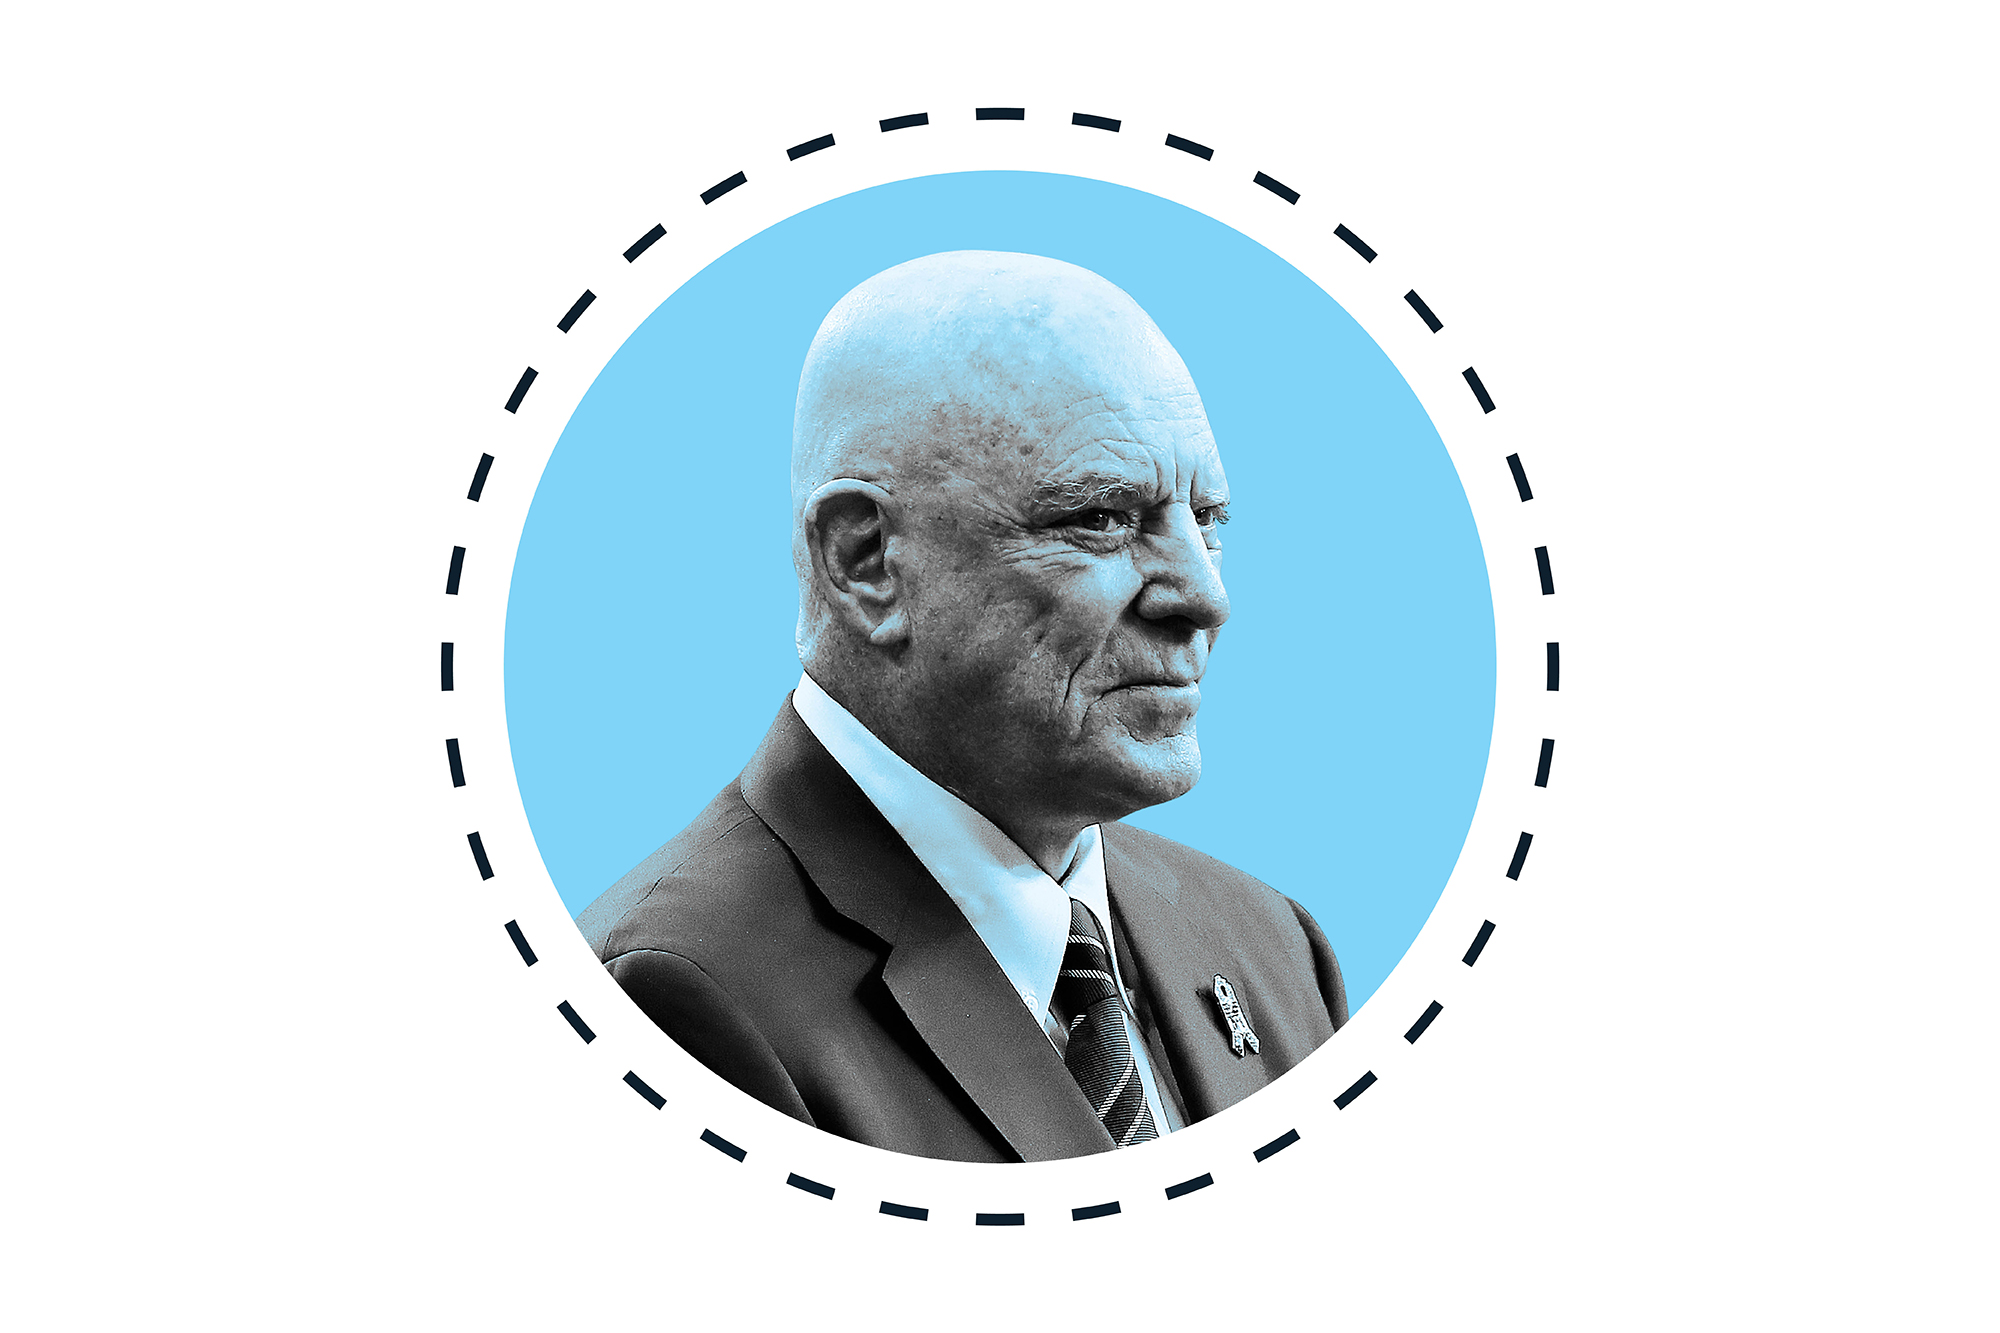 Houston Texans Owner: Bob McNair net worth, political donations